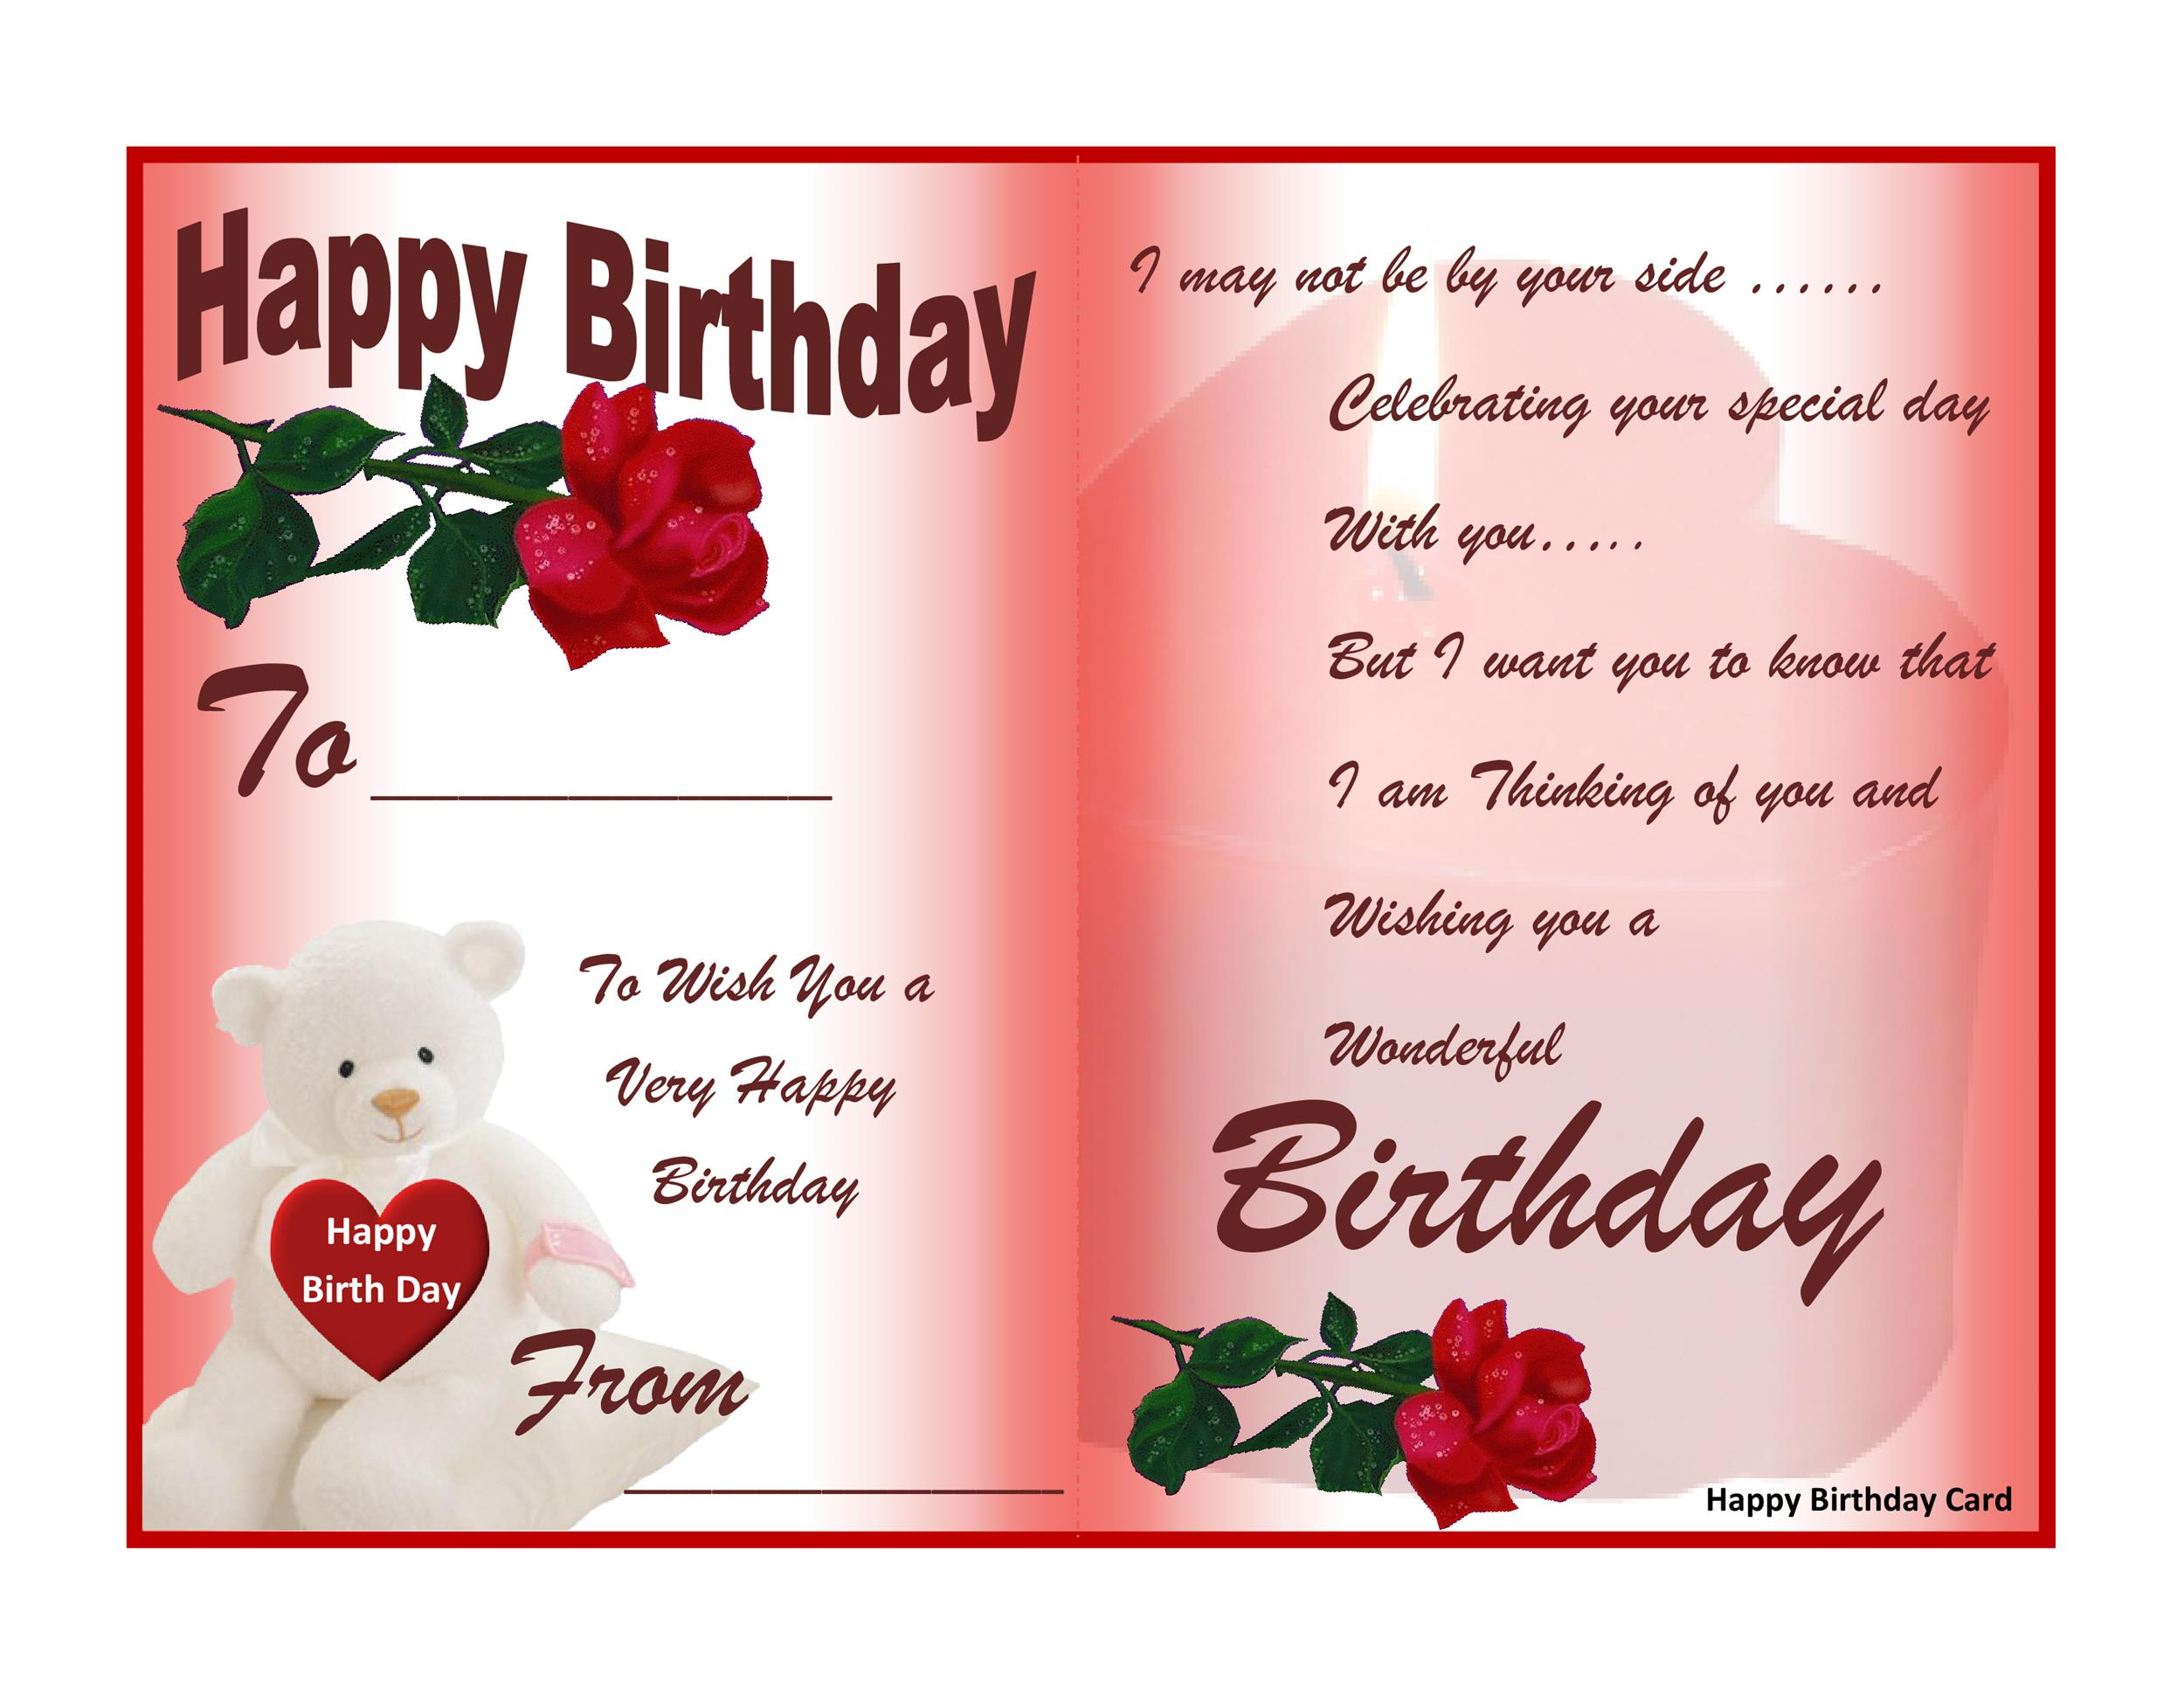 40+ FREE Birthday Card Templates - Template Lab - Birthday Card Sample